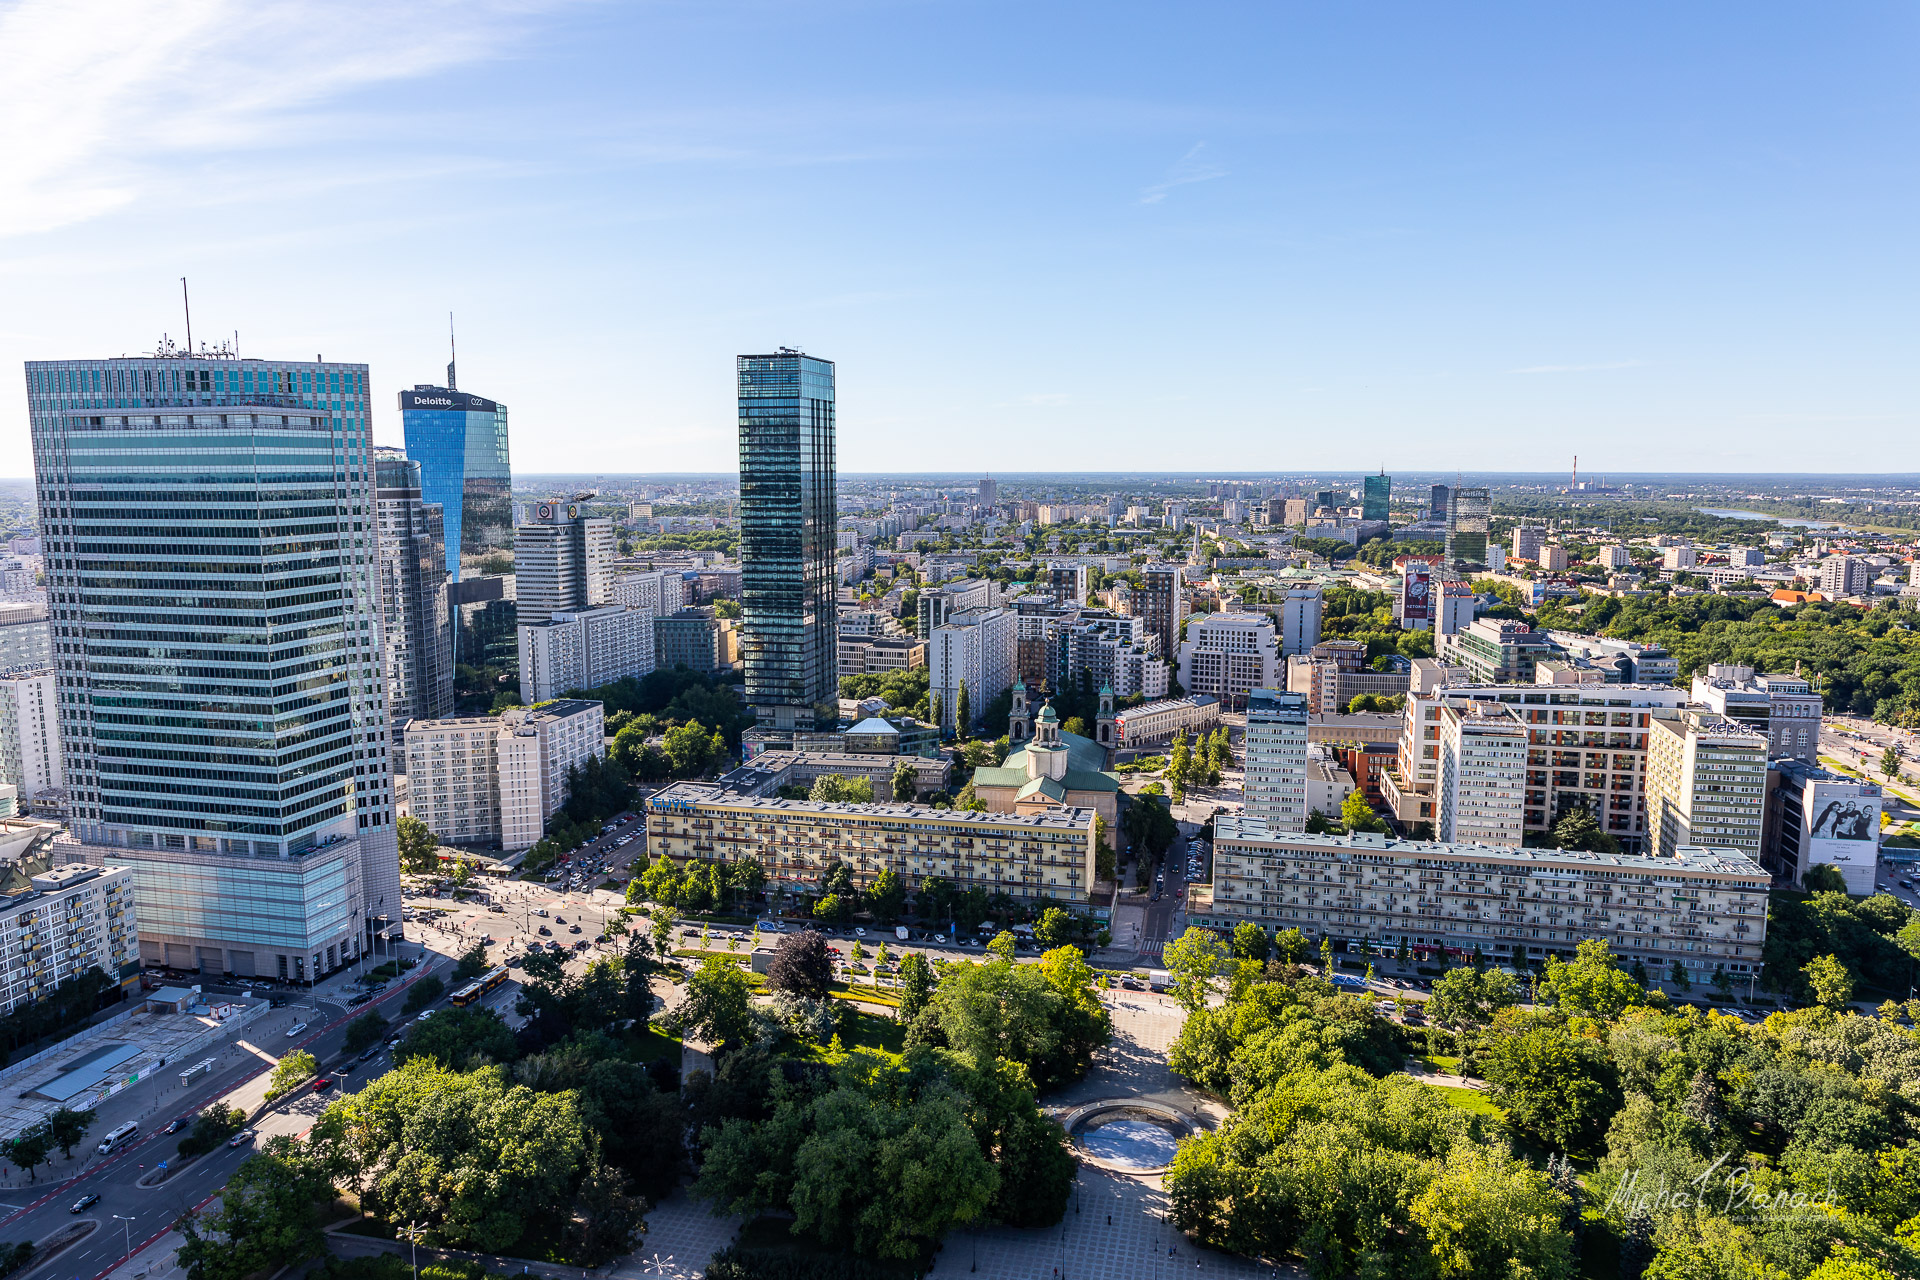 Panorama of Warsaw from Palace of Culture and Science